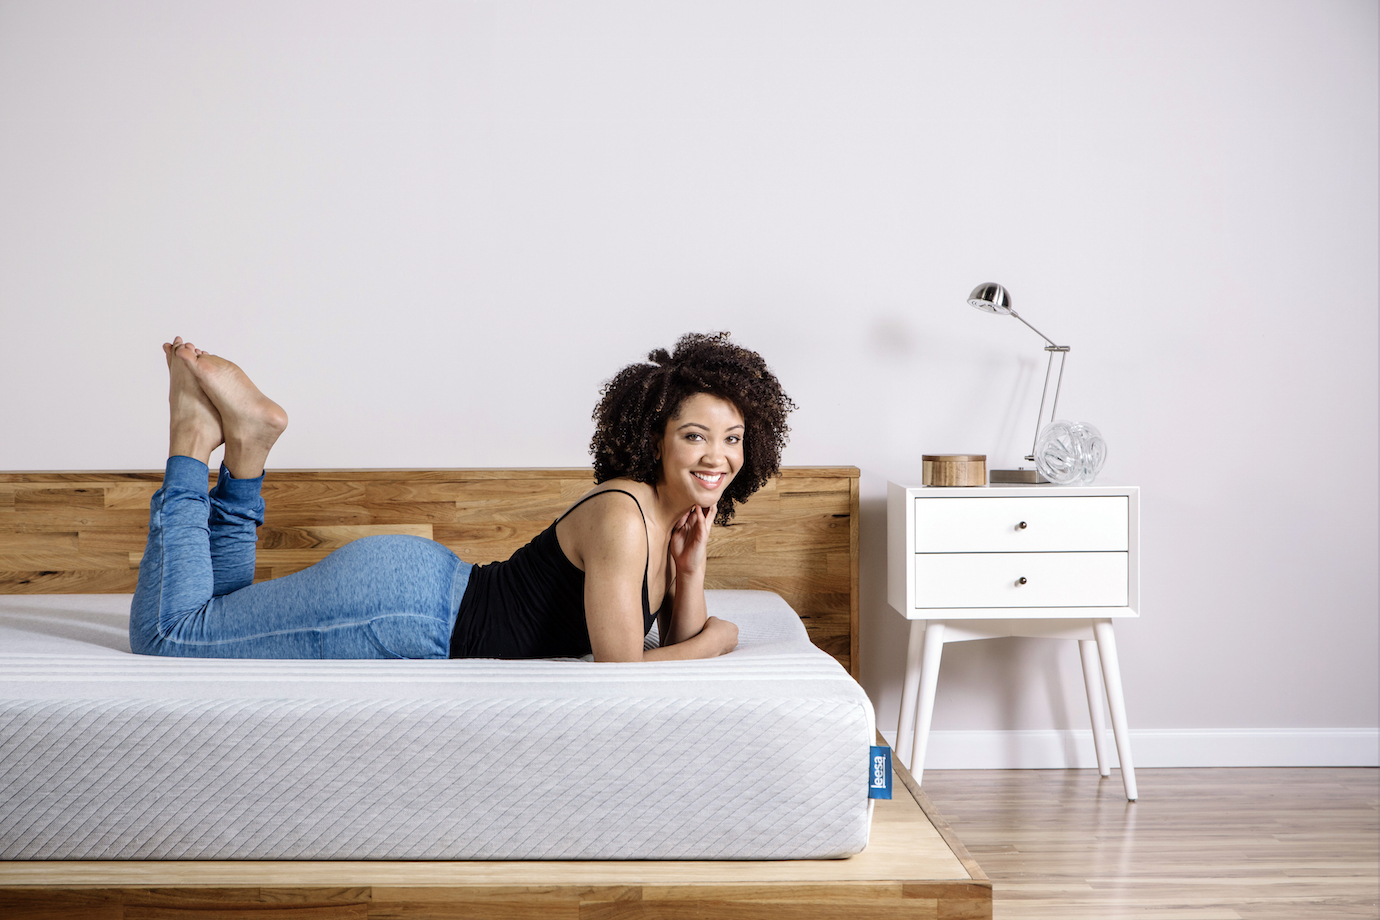 Sponsored Message: Leesa Mattresses are designed to help you sleep better, whatever your body type